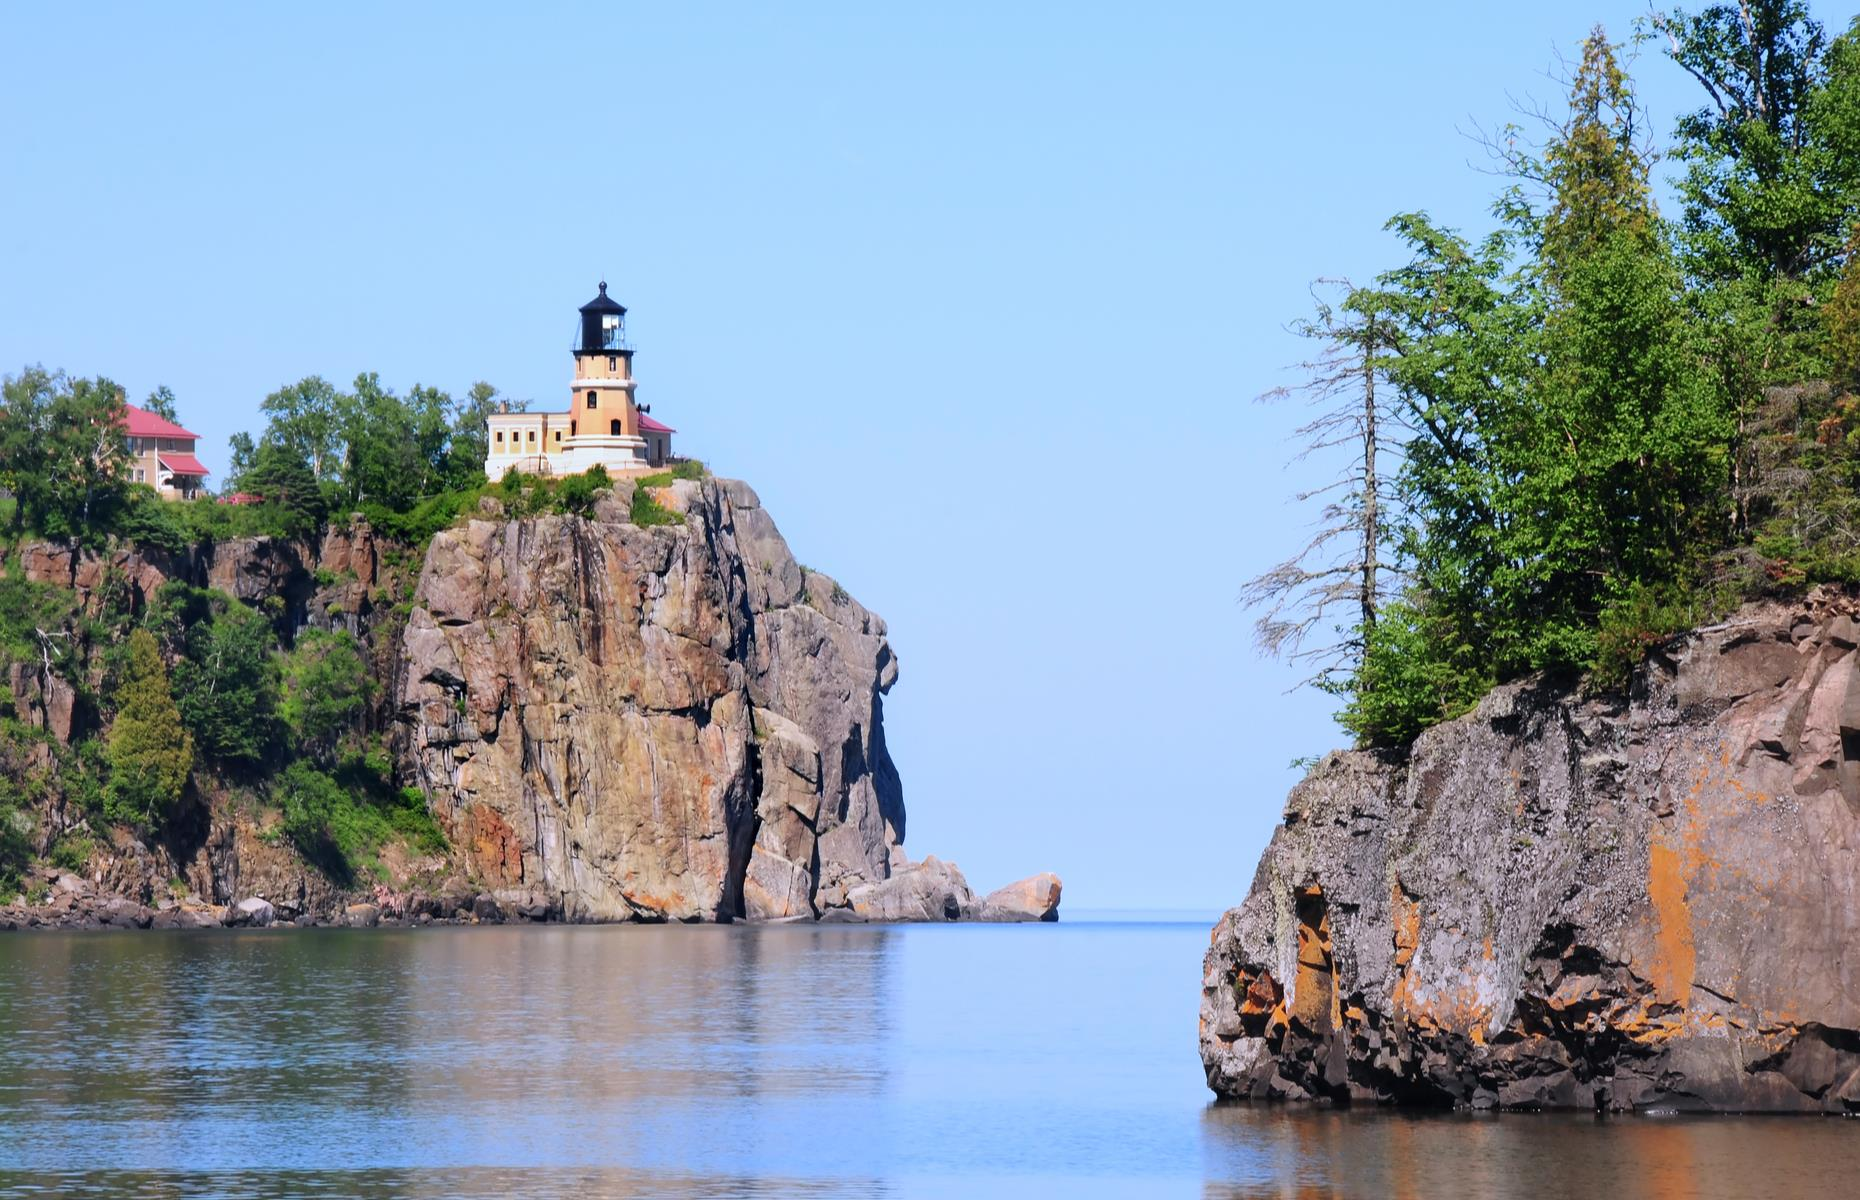 Slide 47 of 101: There are scenic spots aplenty along the North Shore, andthe Split Rock Lighthouse State Park(pictured) particularly loves the camera.Aside from its majestic cliff-top lighthouse, the park has opportunities for wildlife viewing and around three miles of hiking trails along the lakeshore (check current park protocols here).There are typically plenty of great places to overnightin the Grand Marais area, but be sure to do your research before you travel.